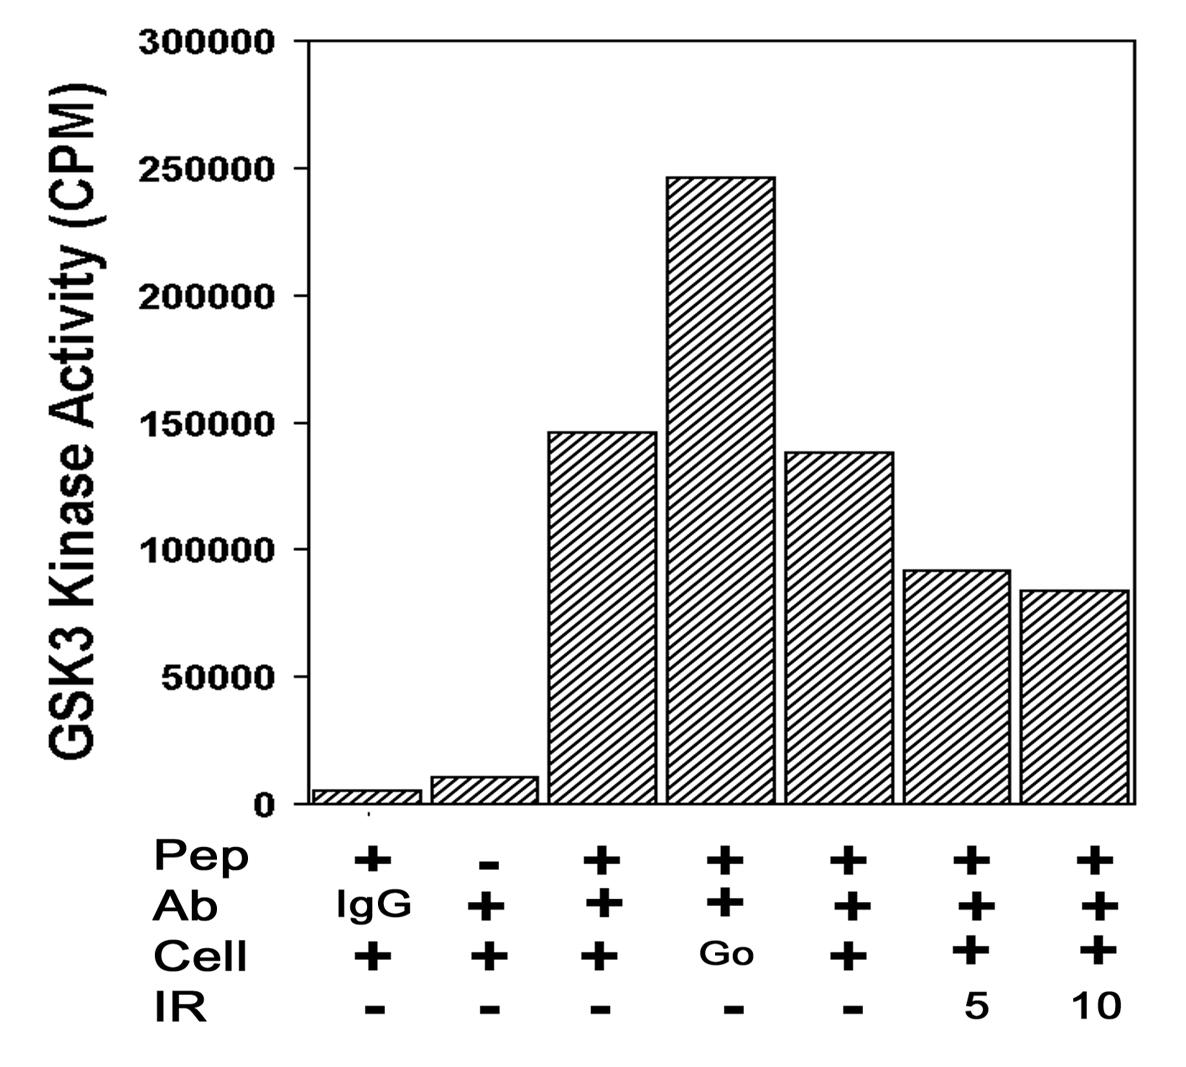 http://static-content.springer.com/image/art%3A10.1186%2F1471-2121-2-12/MediaObjects/12860_2001_Article_16_Fig4_HTML.jpg